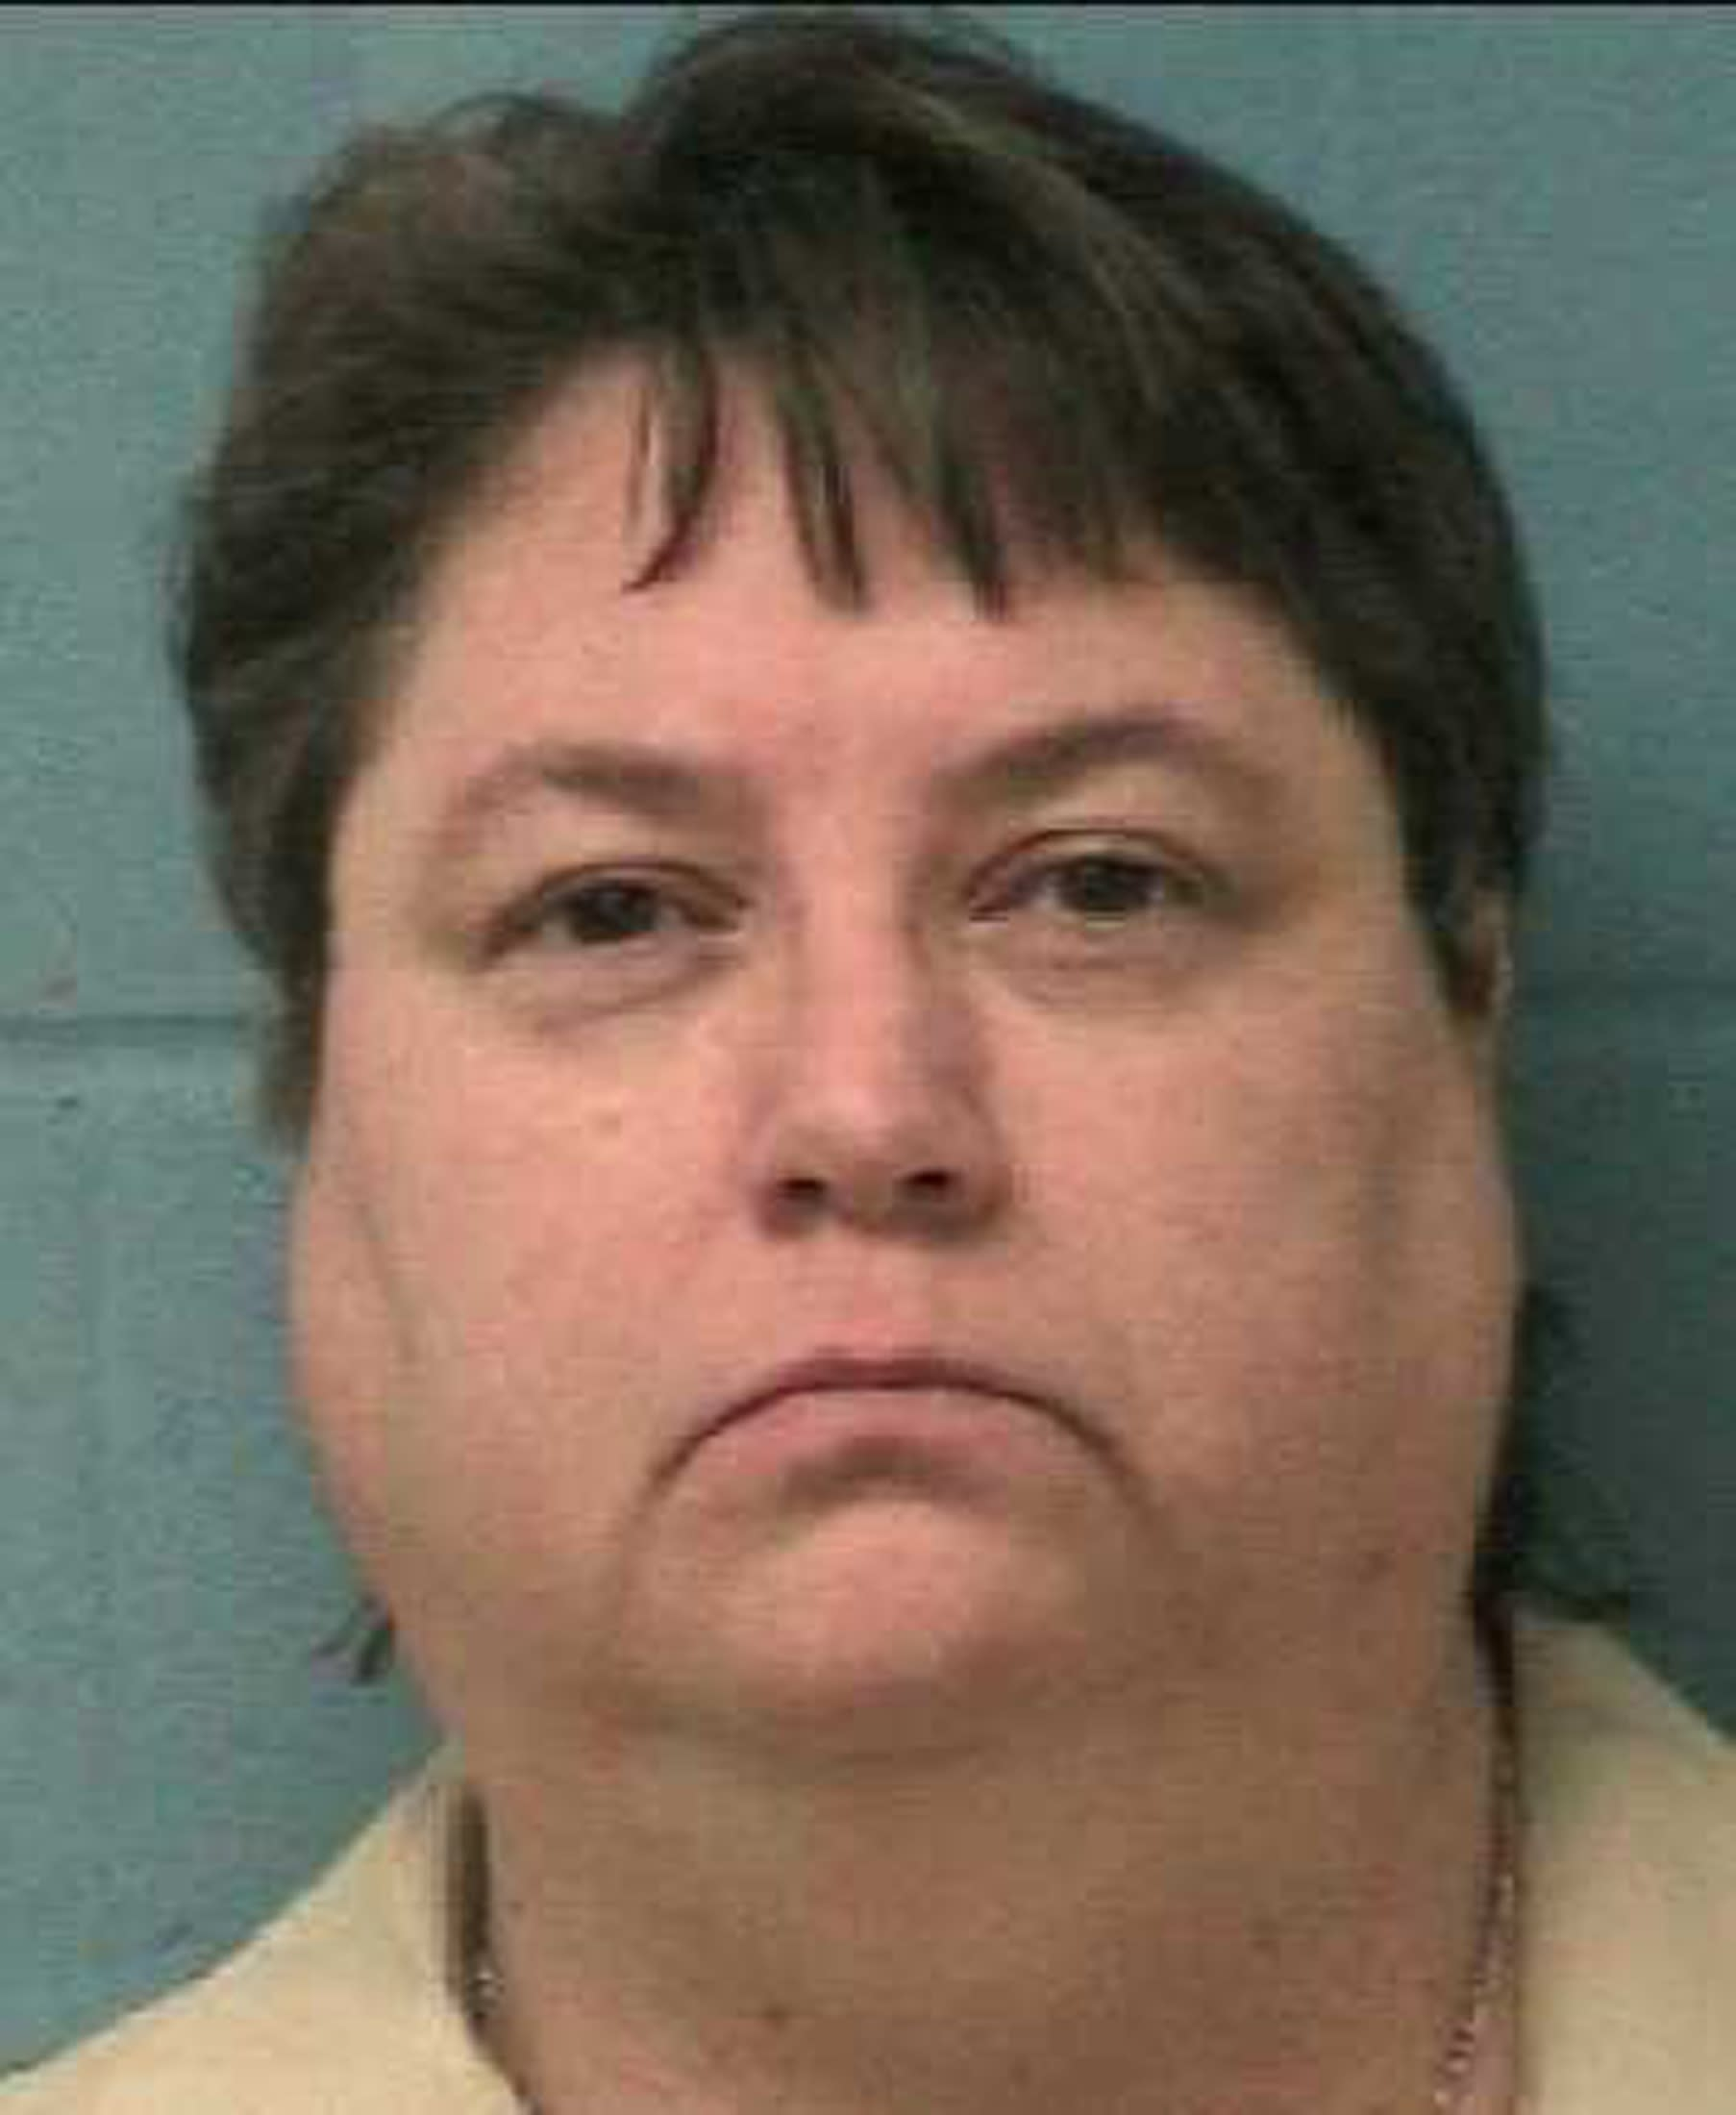 Death row inmate Kelly Renee Gissendaner is seen in an undated picture from the Georgia Department of Corrections. Gissendaner, sent to Georgia's death row for the murder of her husband, is due to die by lethal injection on February 24, 2015, the first time in 70 years the state would execute a female prisoner. REUTERS/Georgia Department of Corrections/Handout via Reuters (UNITED STATES - Tags: CRIME LAW) THIS IMAGE HAS BEEN SUPPLIED BY A THIRD PARTY. IT IS DISTRIBUTED, EXACTLY AS RECEIVED BY REUTERS, AS A SERVICE TO CLIENTS. FOR EDITORIAL USE ONLY. NOT FOR SALE FOR MARKETING OR ADVERTISING CAMPAIGNS